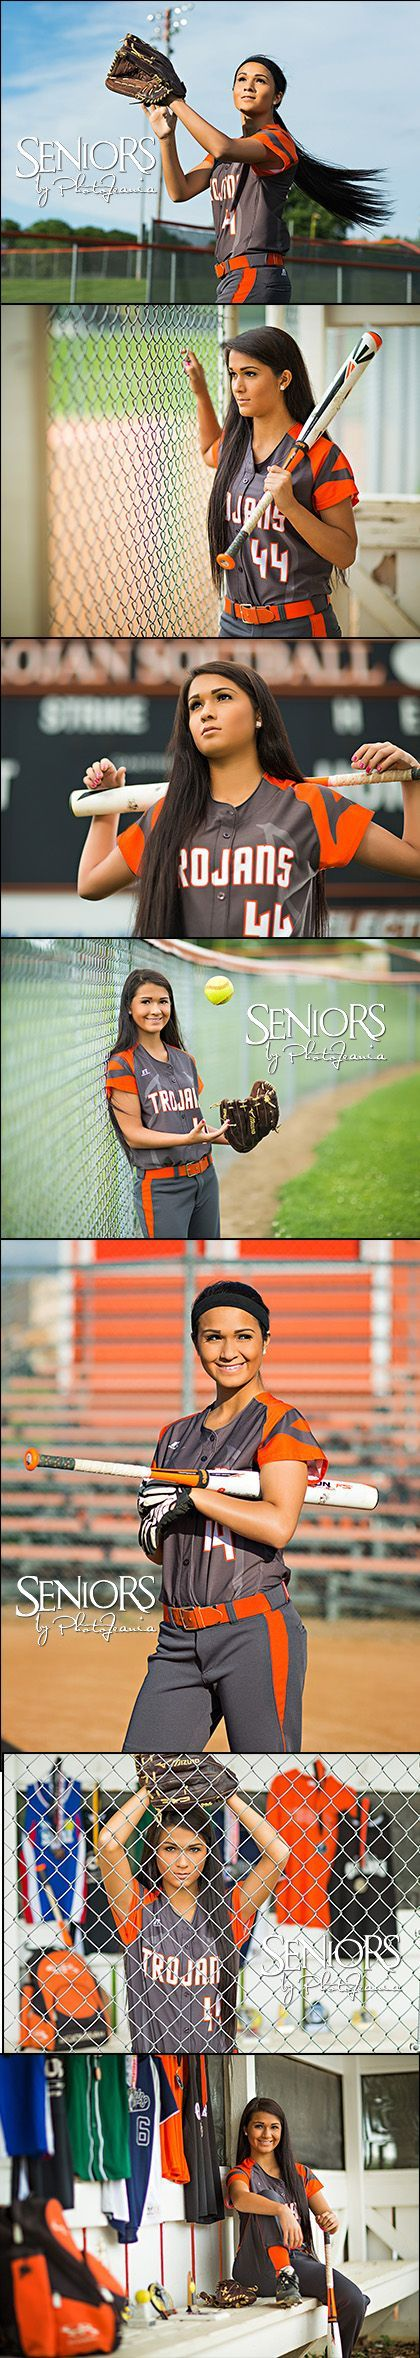 Softball theme senior pictures.    Fly Ball: Senior picture ideas for girls. Class of 2016 Senior Model Trisha Kunze in Pleasantville, IA #softballseniorpictureideas #softballseniorpictures #seniorsbyphotojeania